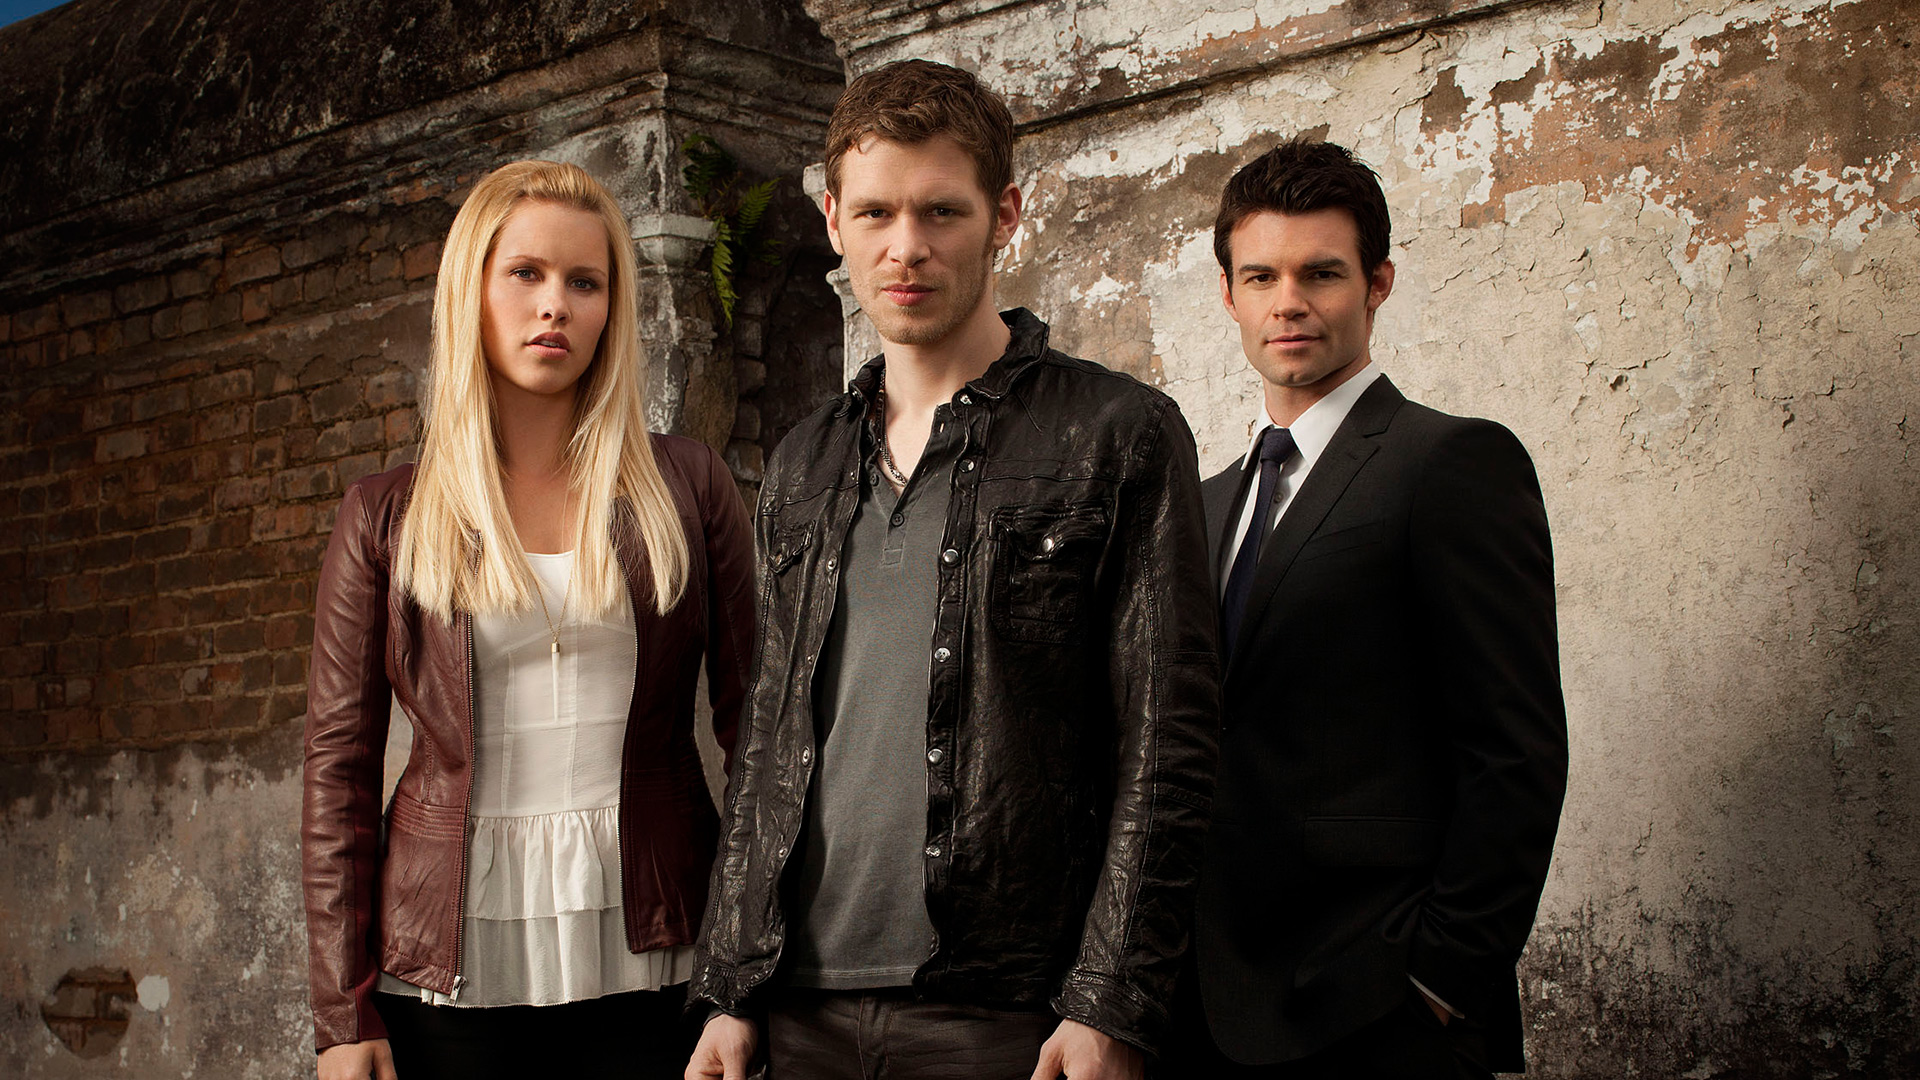 The originals hd wallpaper background image 1920x1080 id 658466 wallpaper abyss - Original wallpaper ...